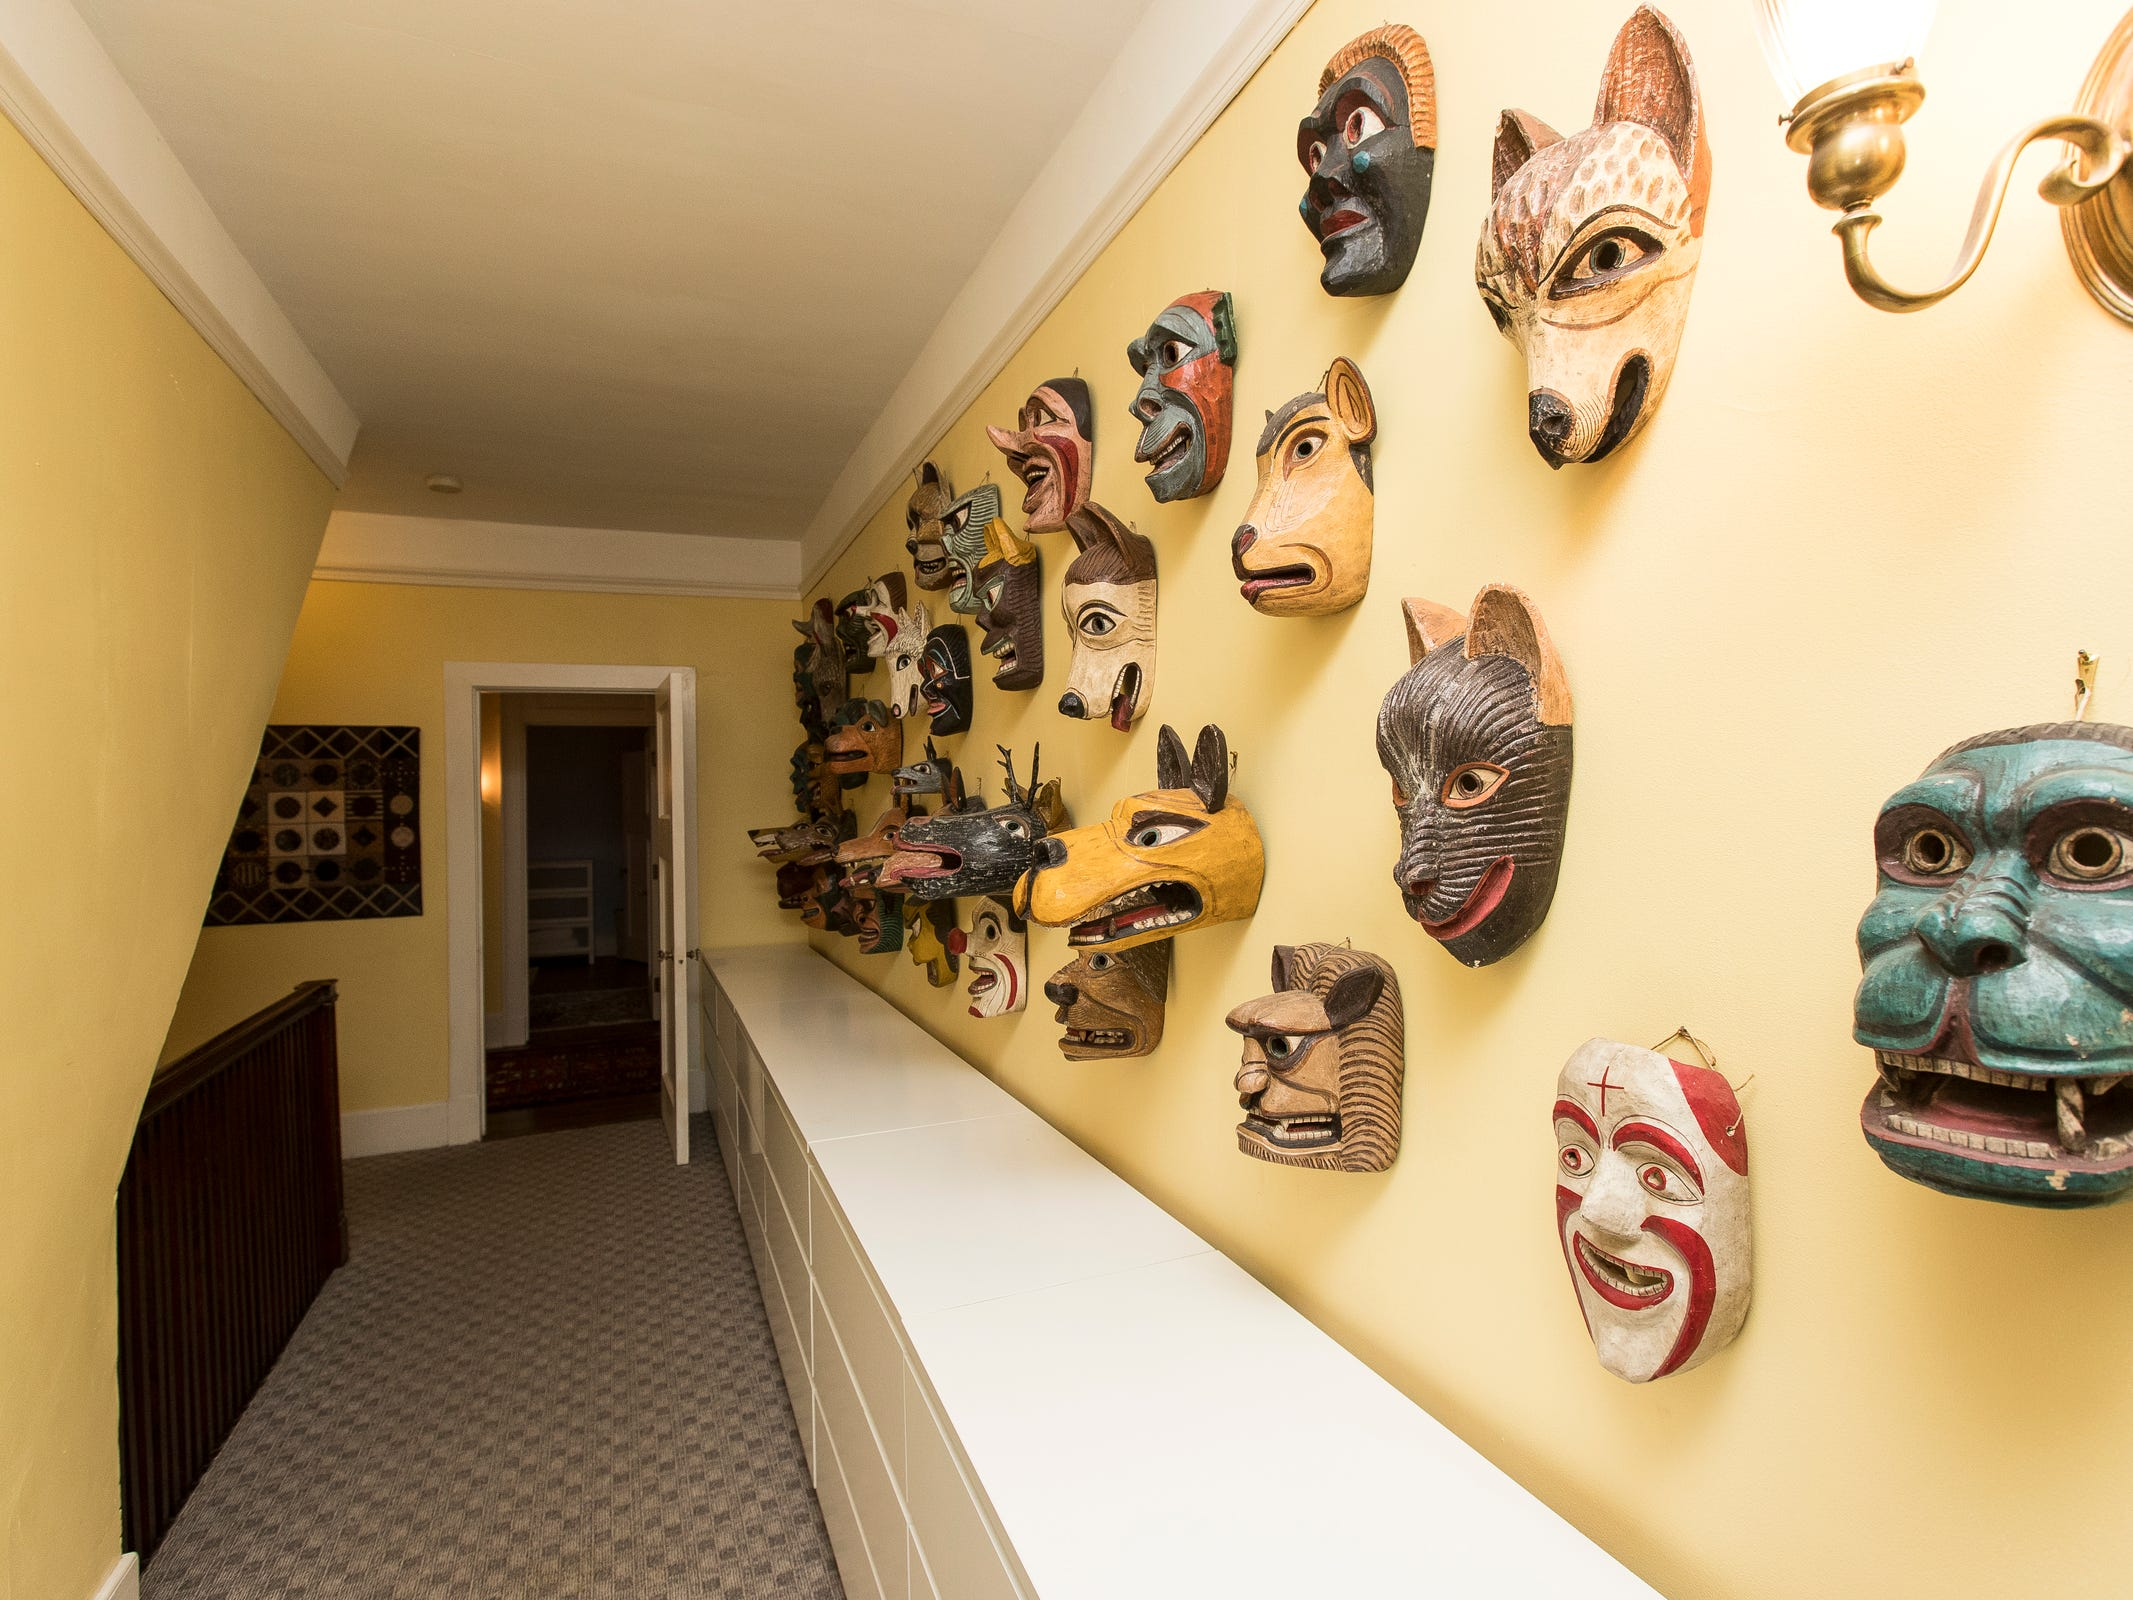 An upstairs hallway decorated with masks.